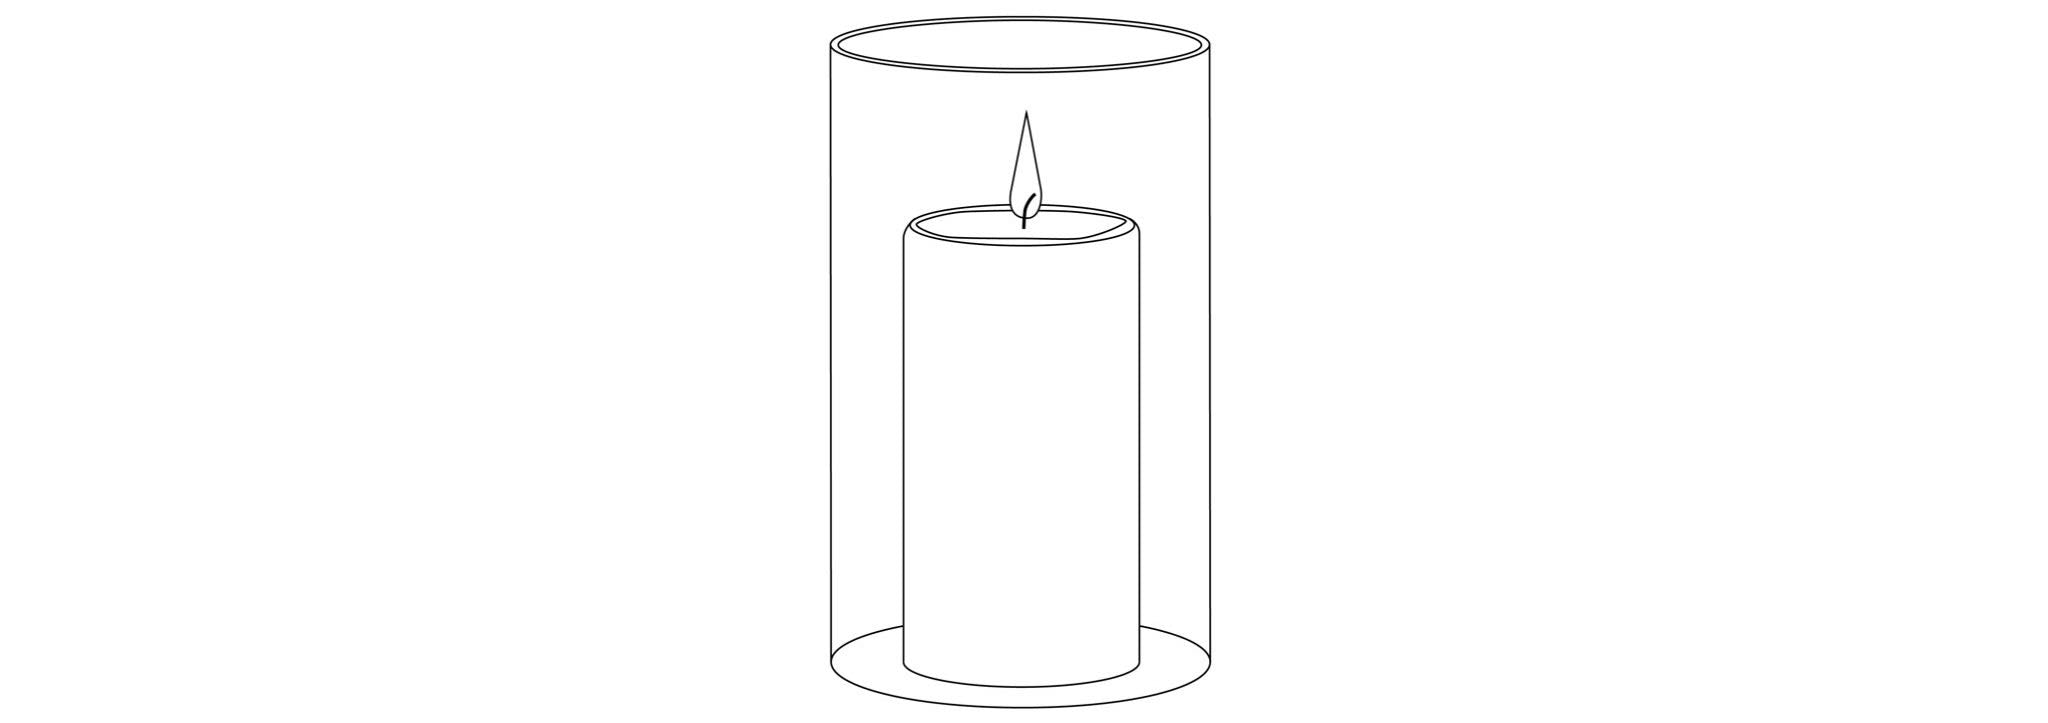 Candle in container